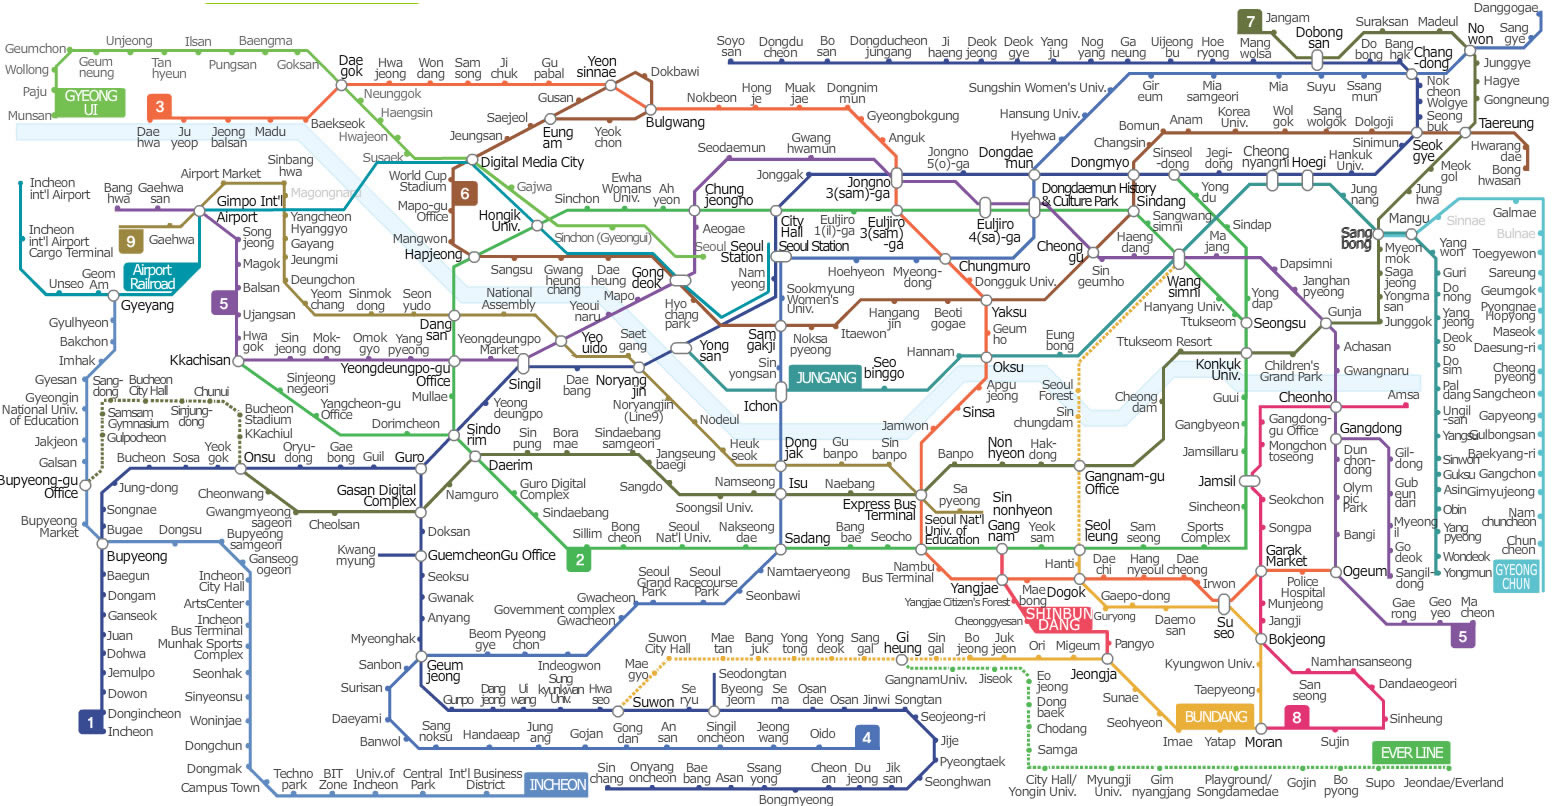 Korean Subway Map English.Seoul Subway Metro Map English Version Updated